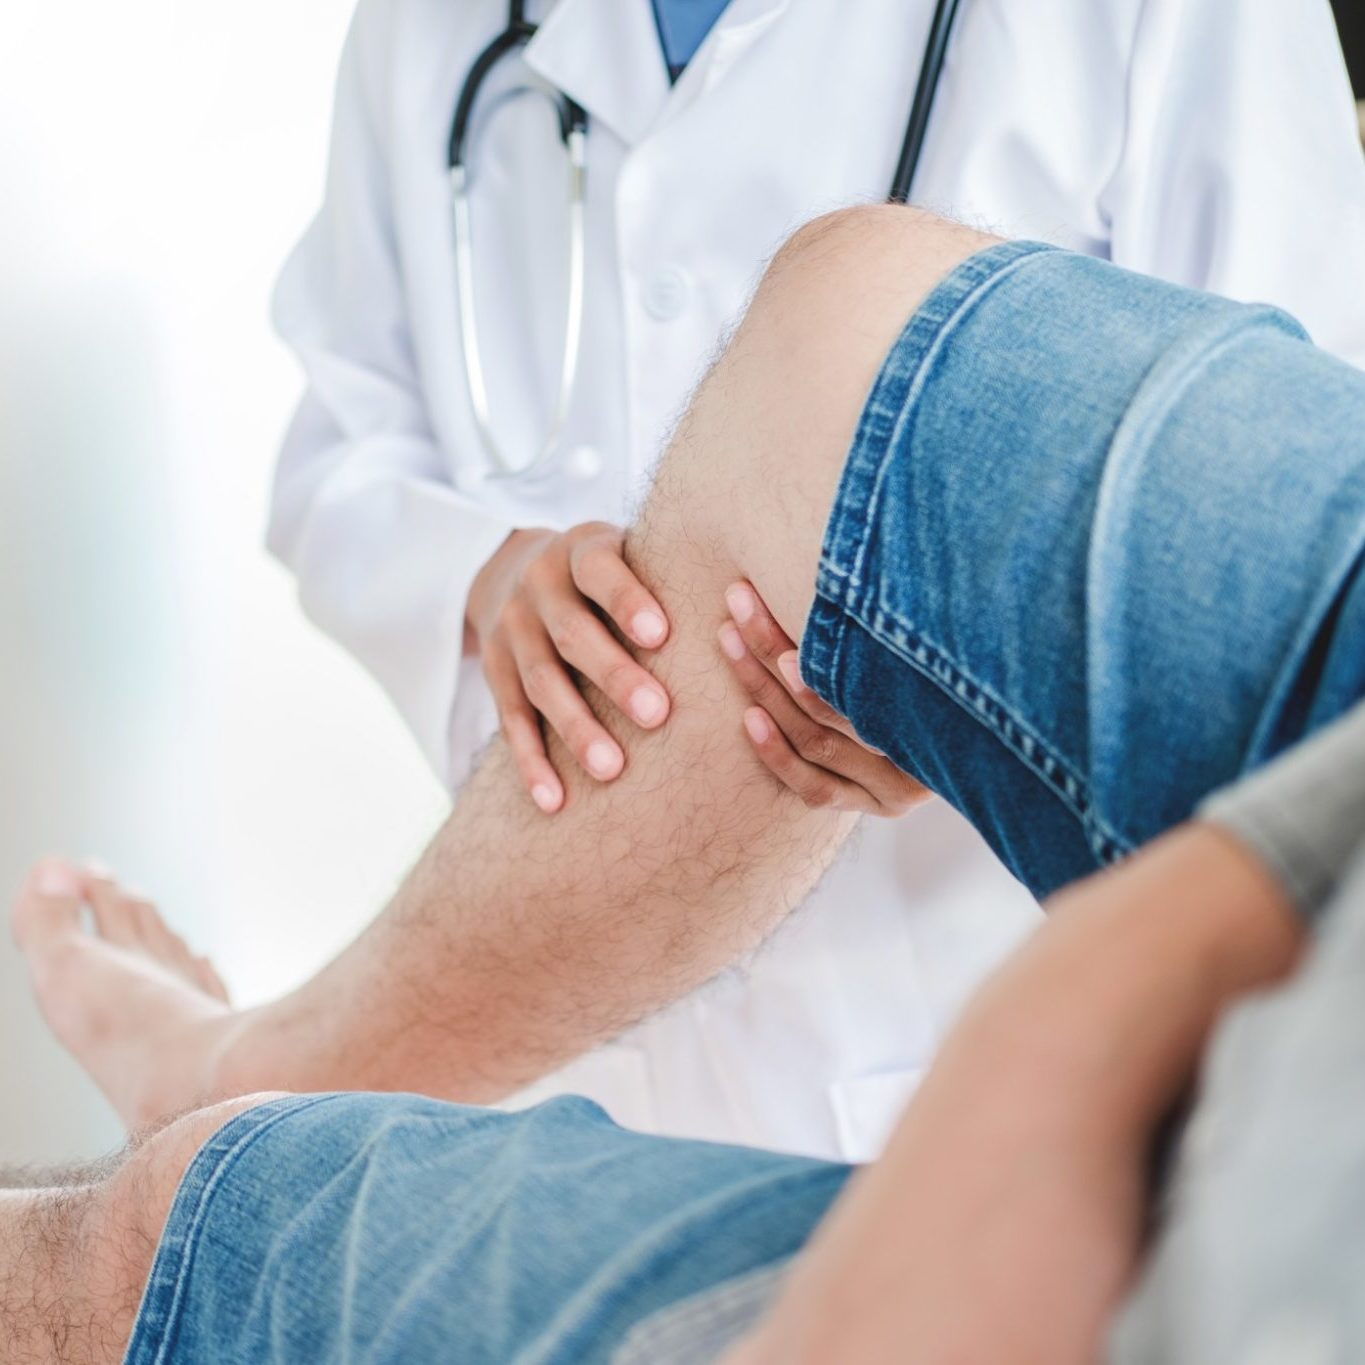 doctor-consulting-with-patient-knee-problems-physical-therapy-concept_t20_0xPYA6